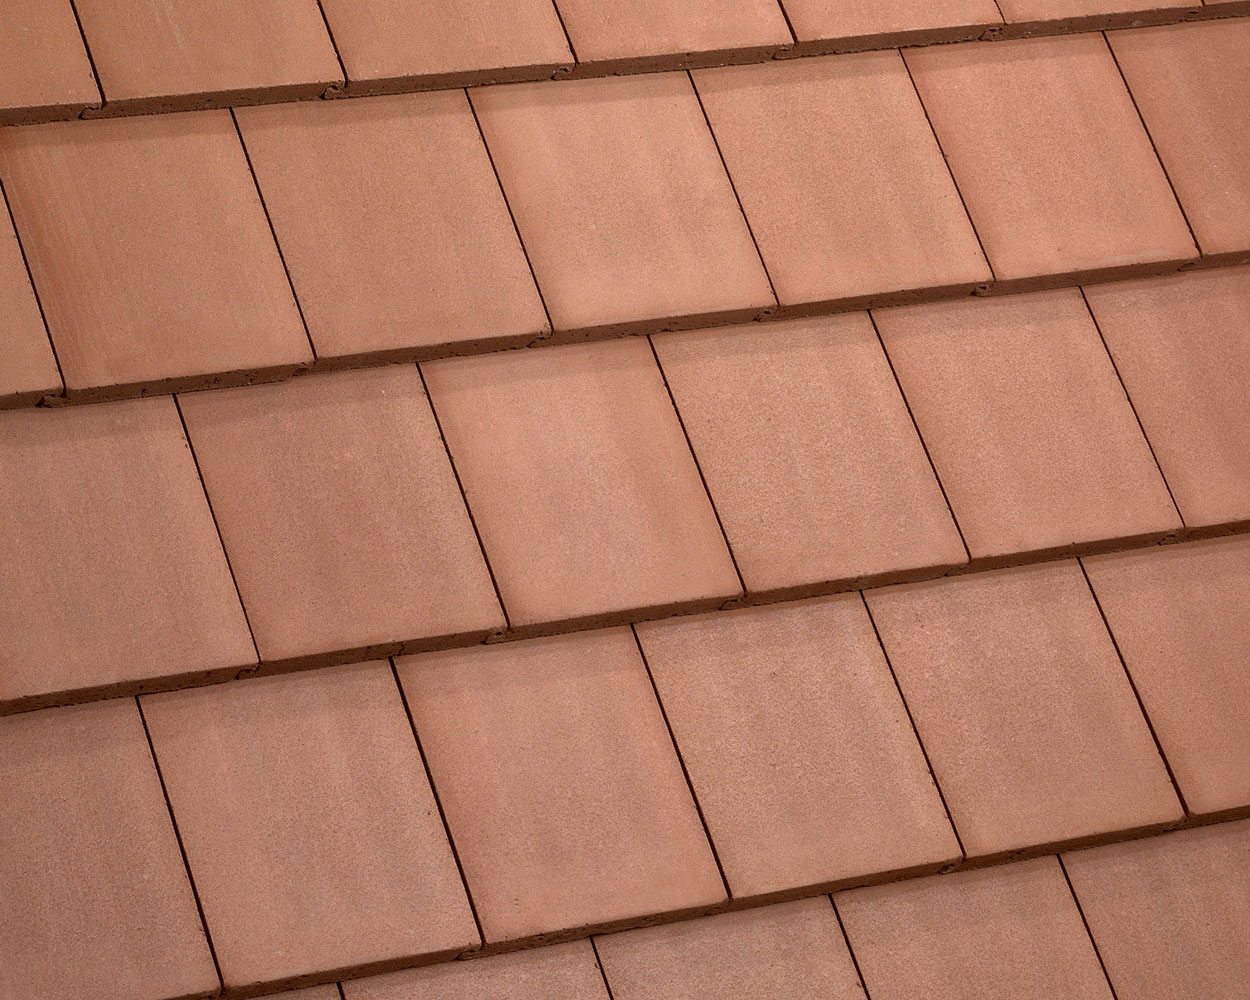 Terracambra range tile roof color swatch